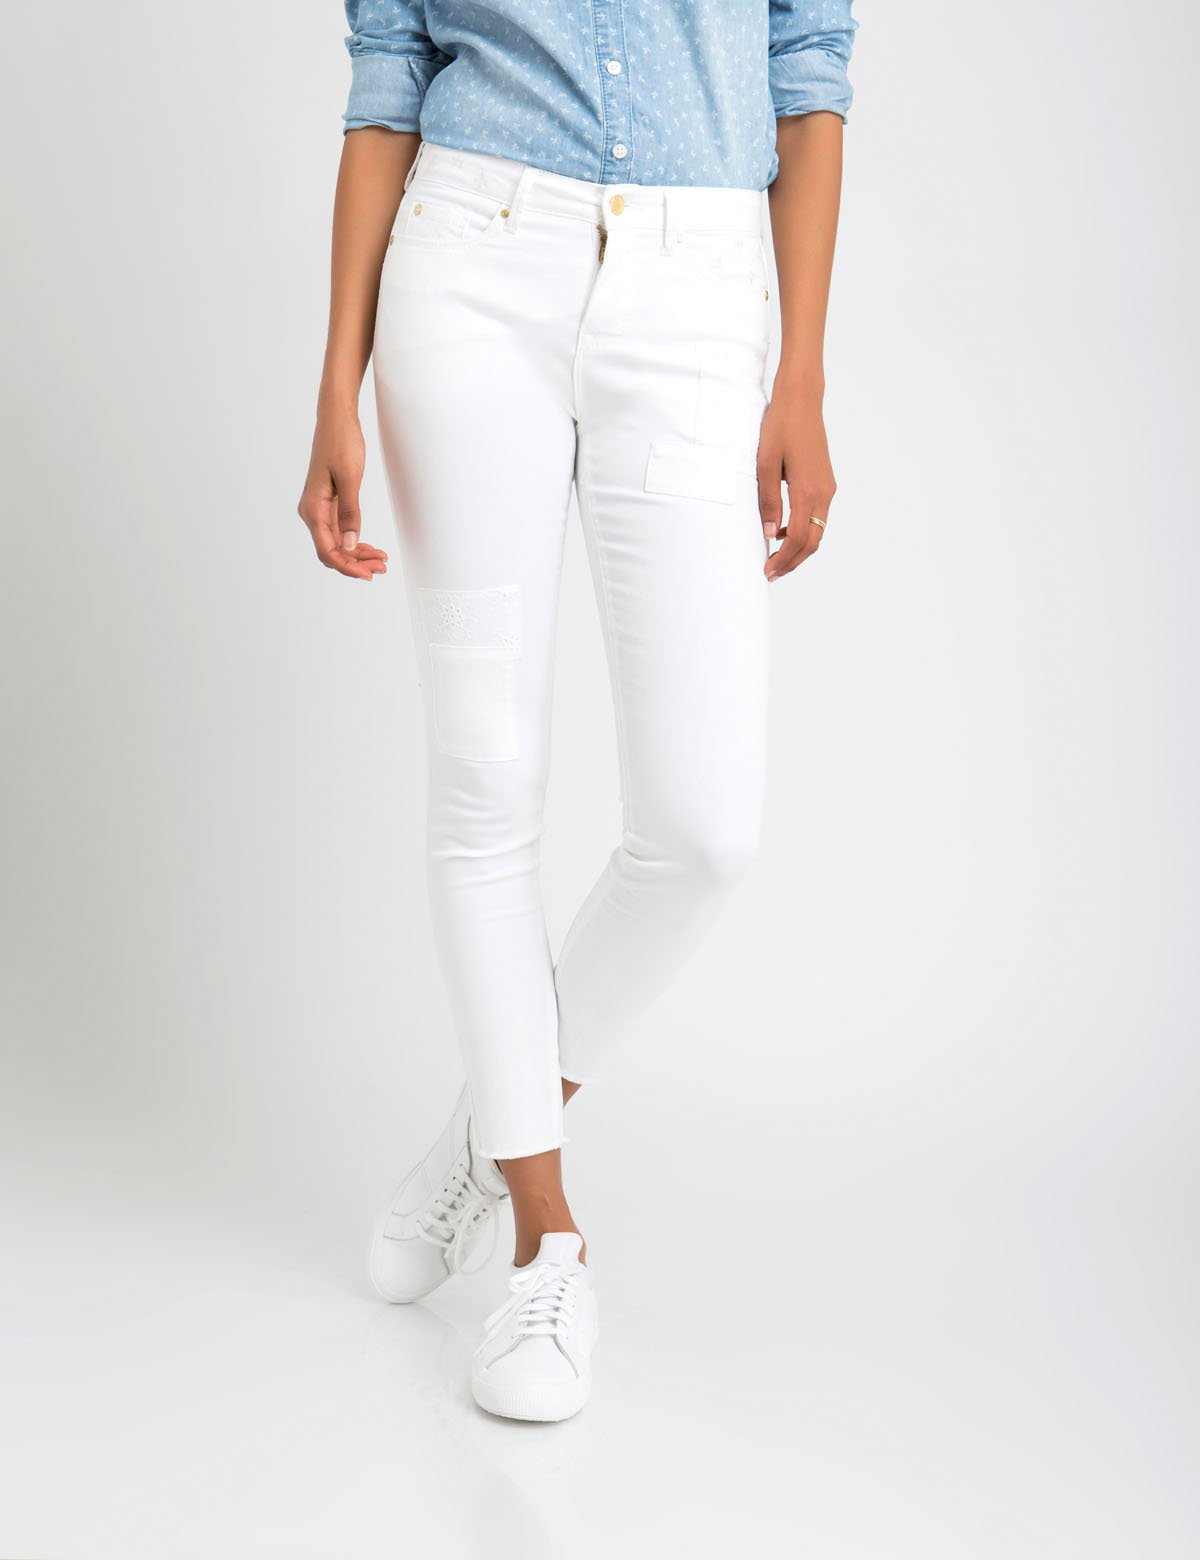 EYELET PATCH JEGGING CROP JEANS - U.S. Polo Assn.